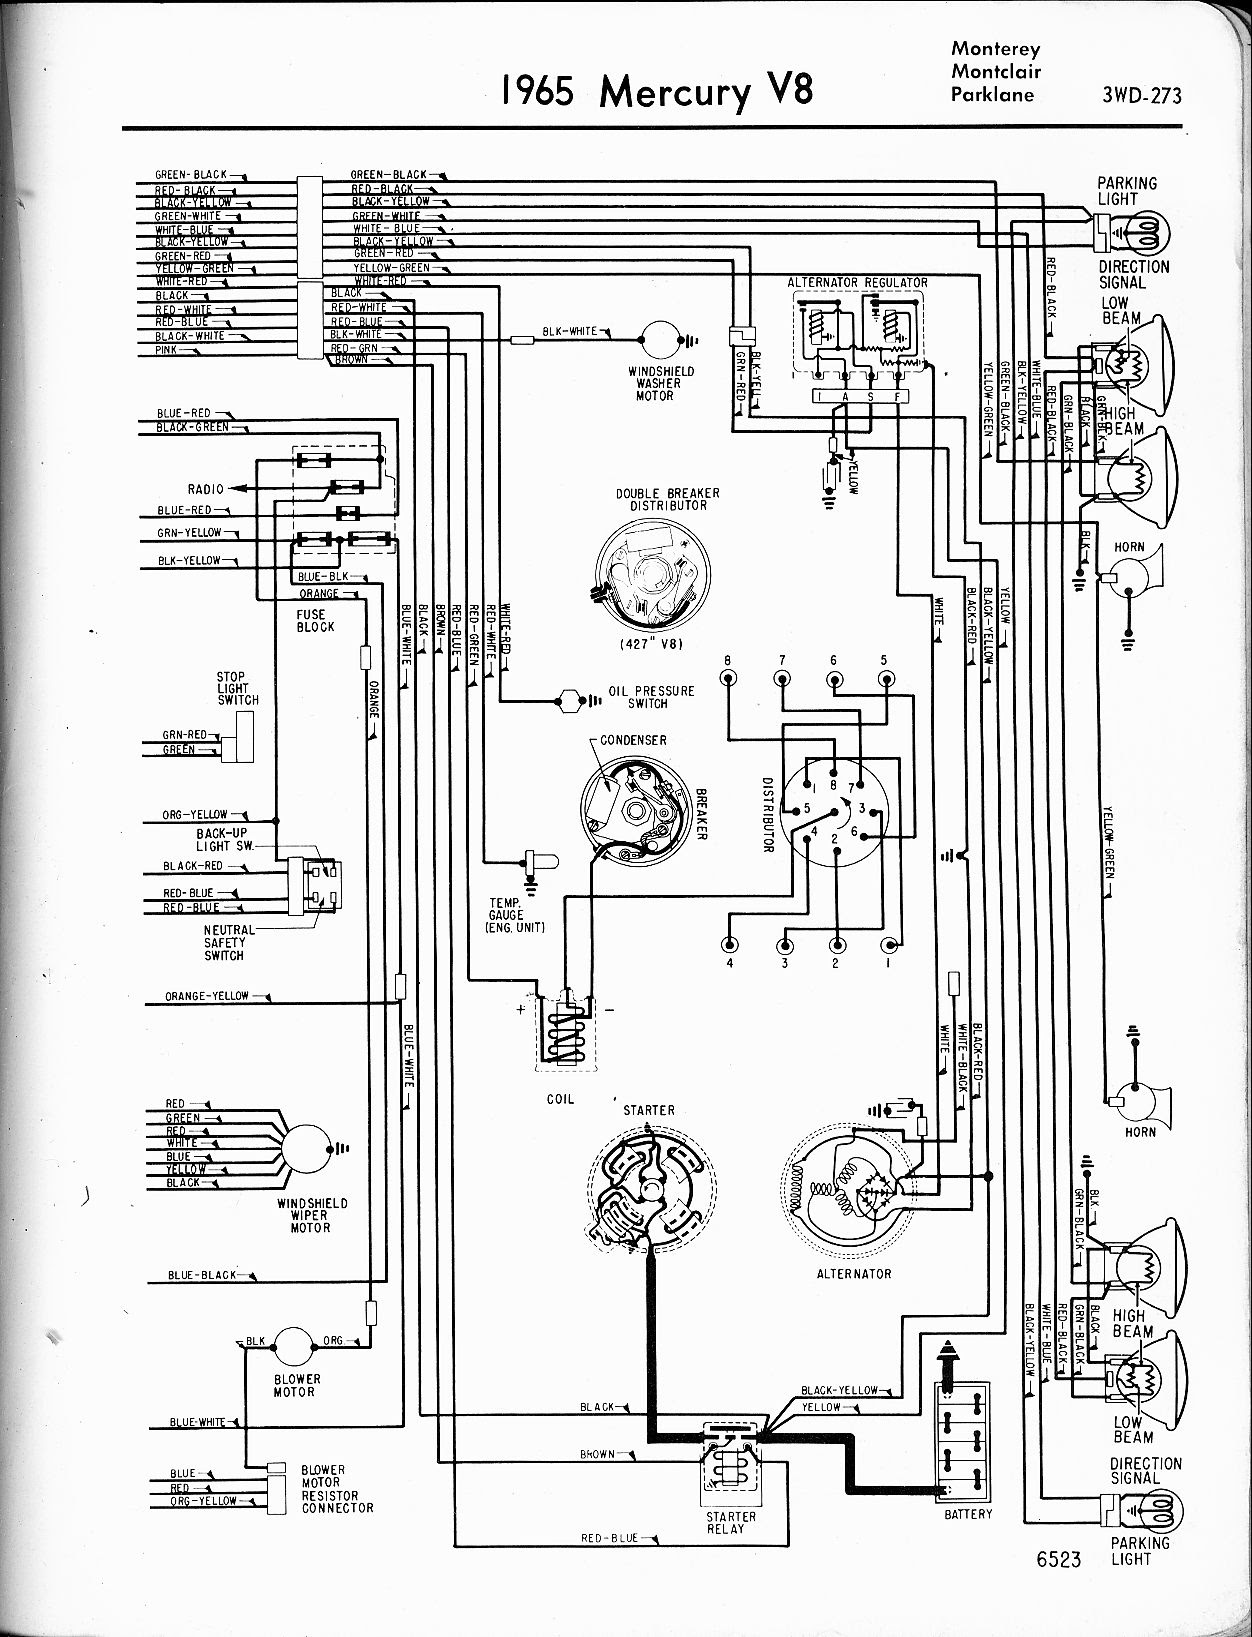 68 Caprice Wiring Diagram Electric Guitar Wiring Diagram For Schecter Bathroom Vents Yenpancane Jeanjaures37 Fr